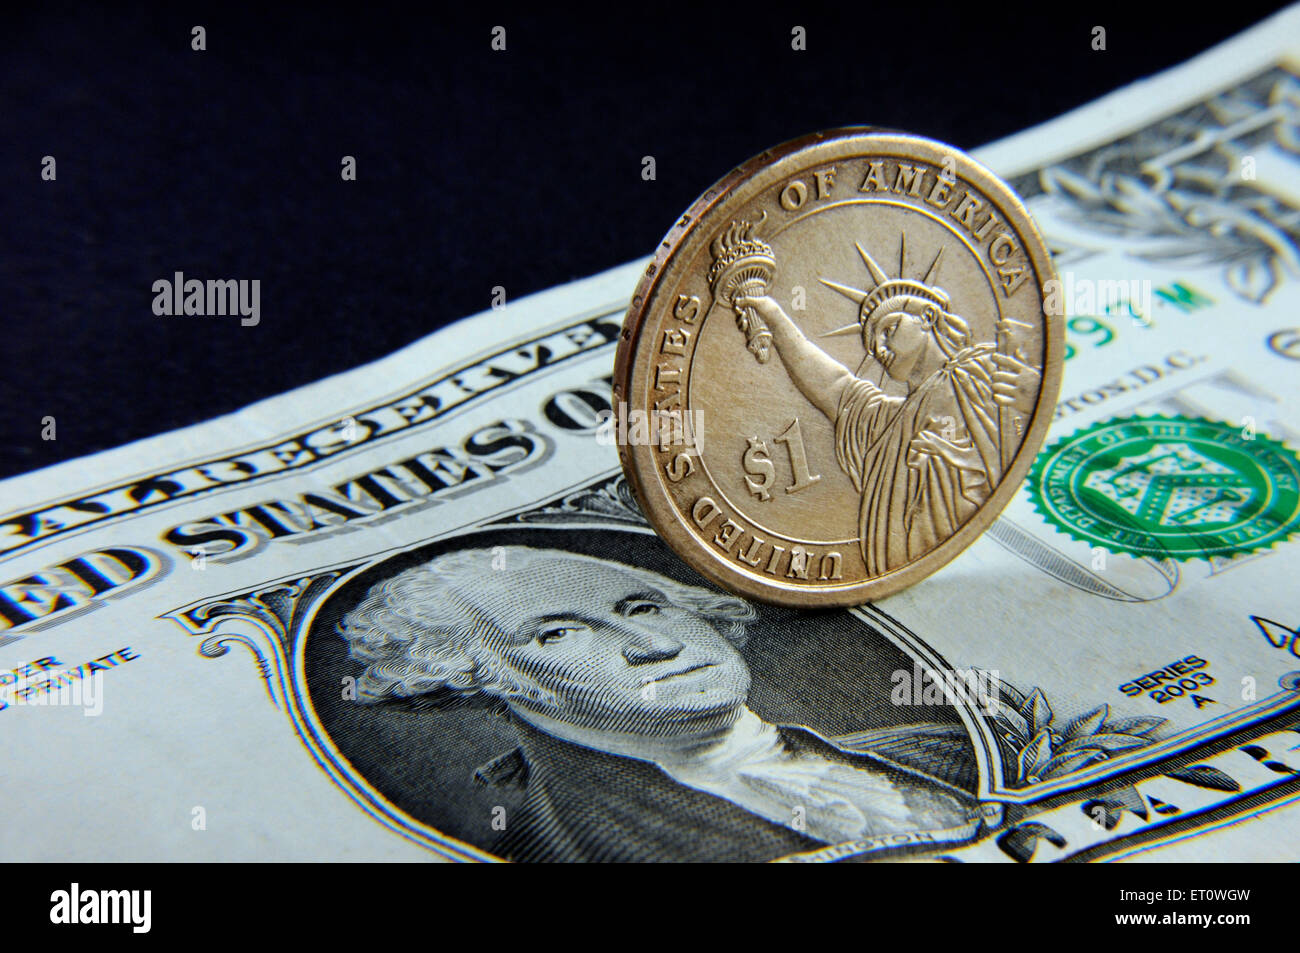 concept of American Dollar note and coin - Stock Image